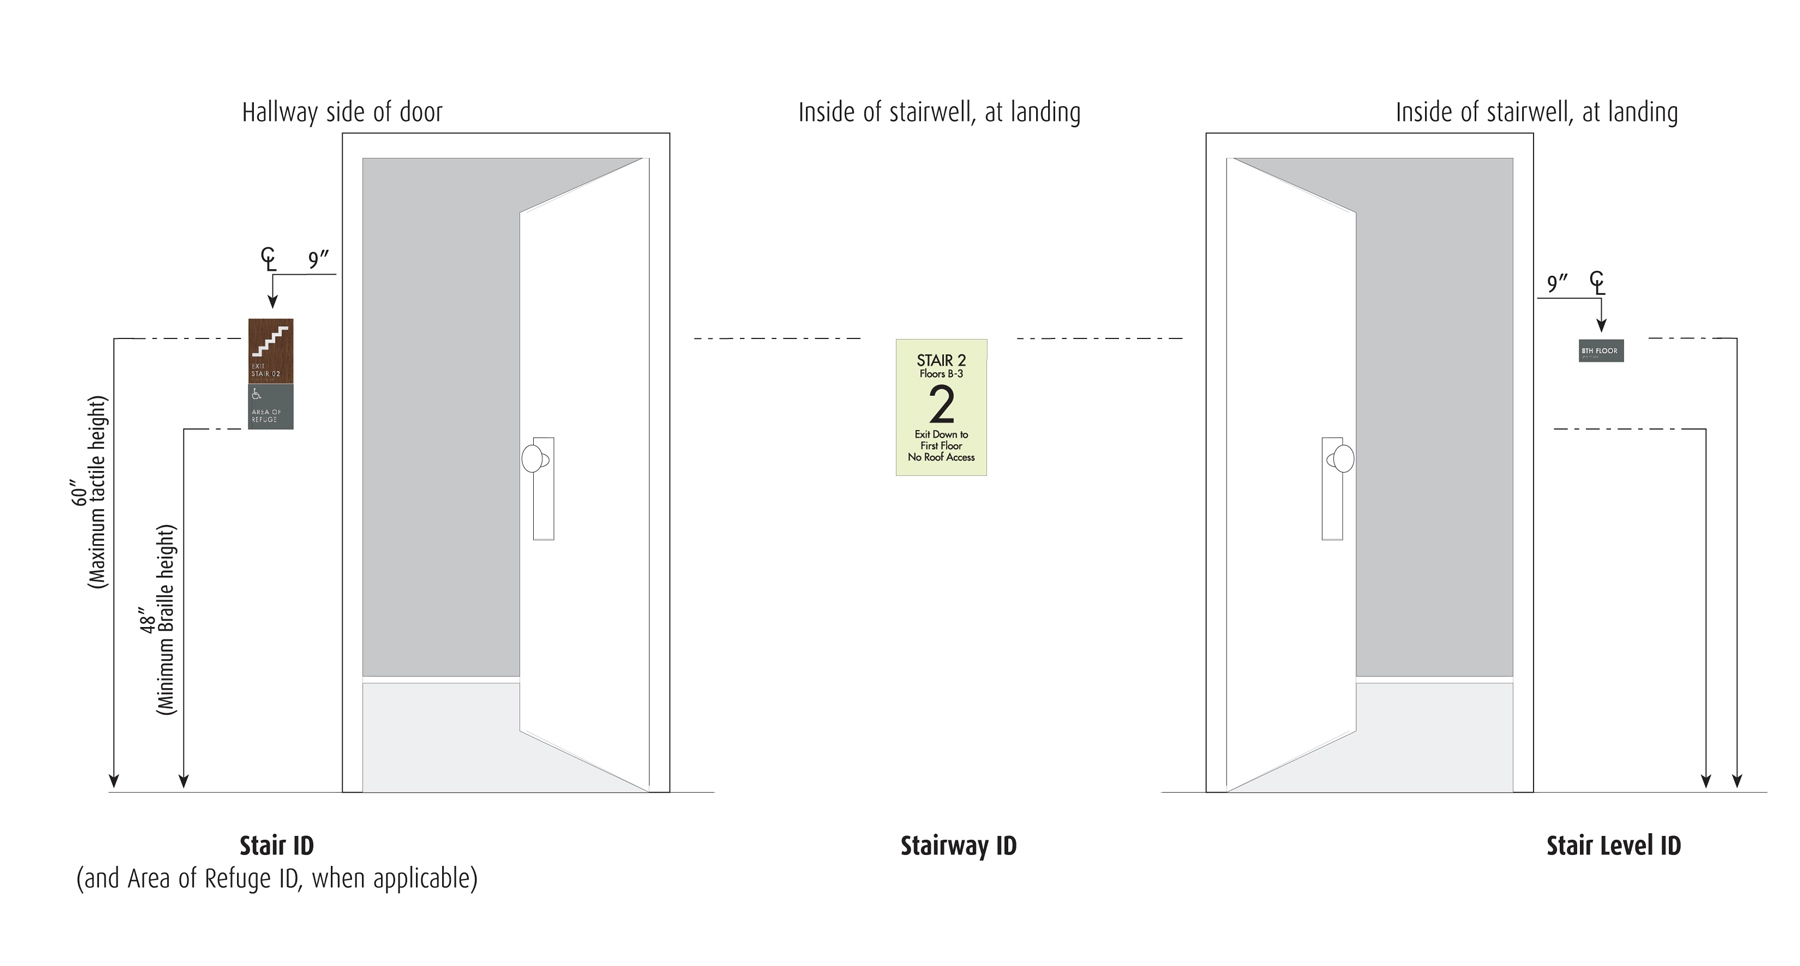 hight resolution of how to install ada required interior stairwell signage